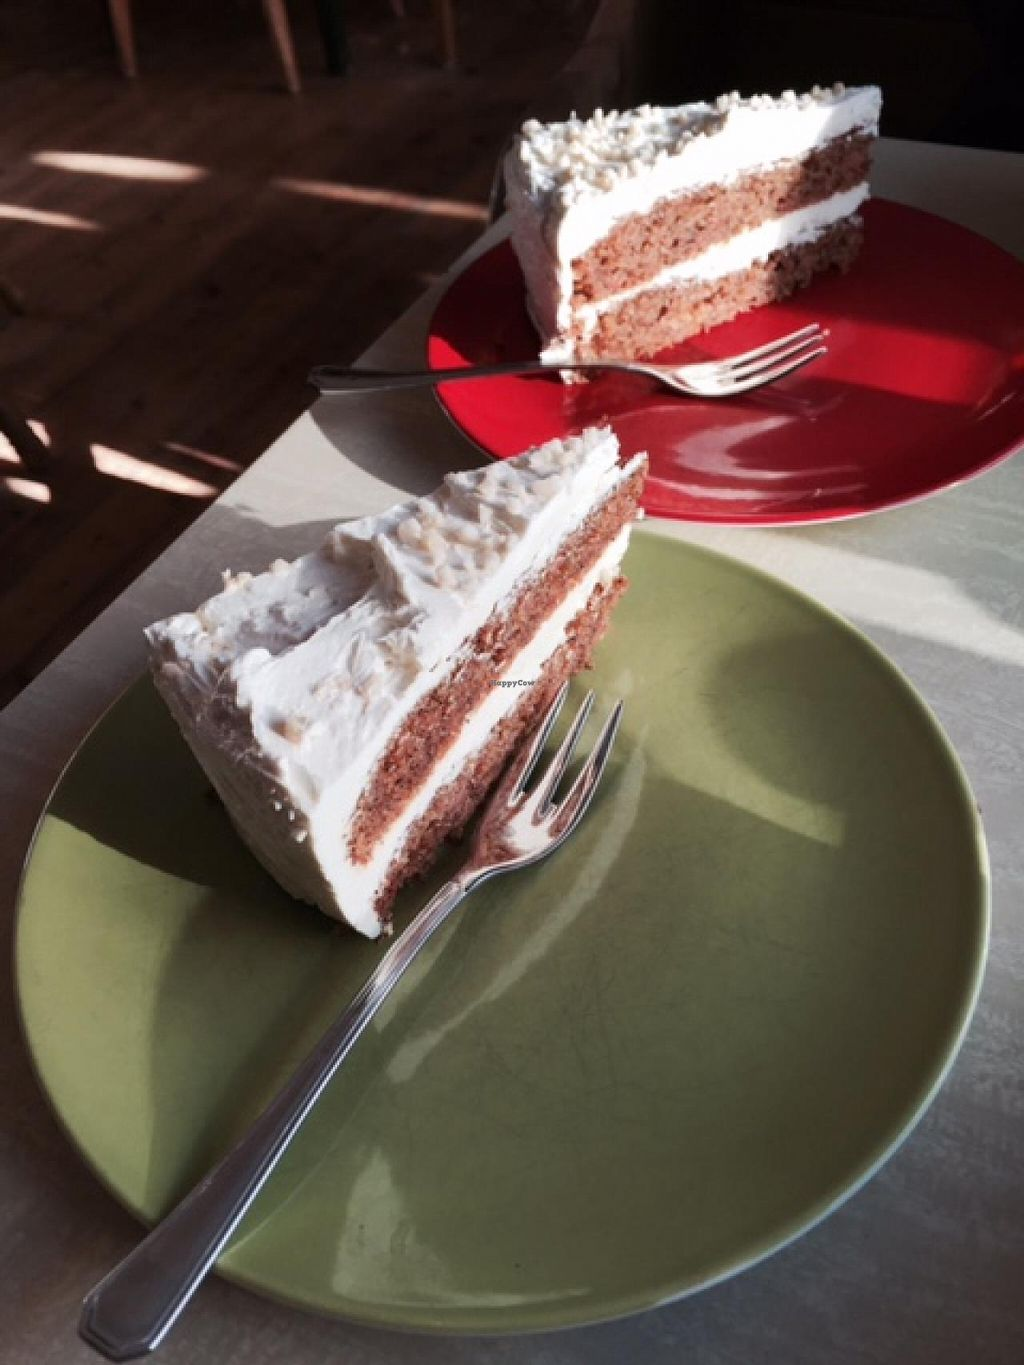 """Photo of Cafe Babalu  by <a href=""""/members/profile/Shel%20Graves"""">Shel Graves</a> <br/>Vegan carrot cake <br/> March 30, 2015  - <a href='/contact/abuse/image/23014/97386'>Report</a>"""